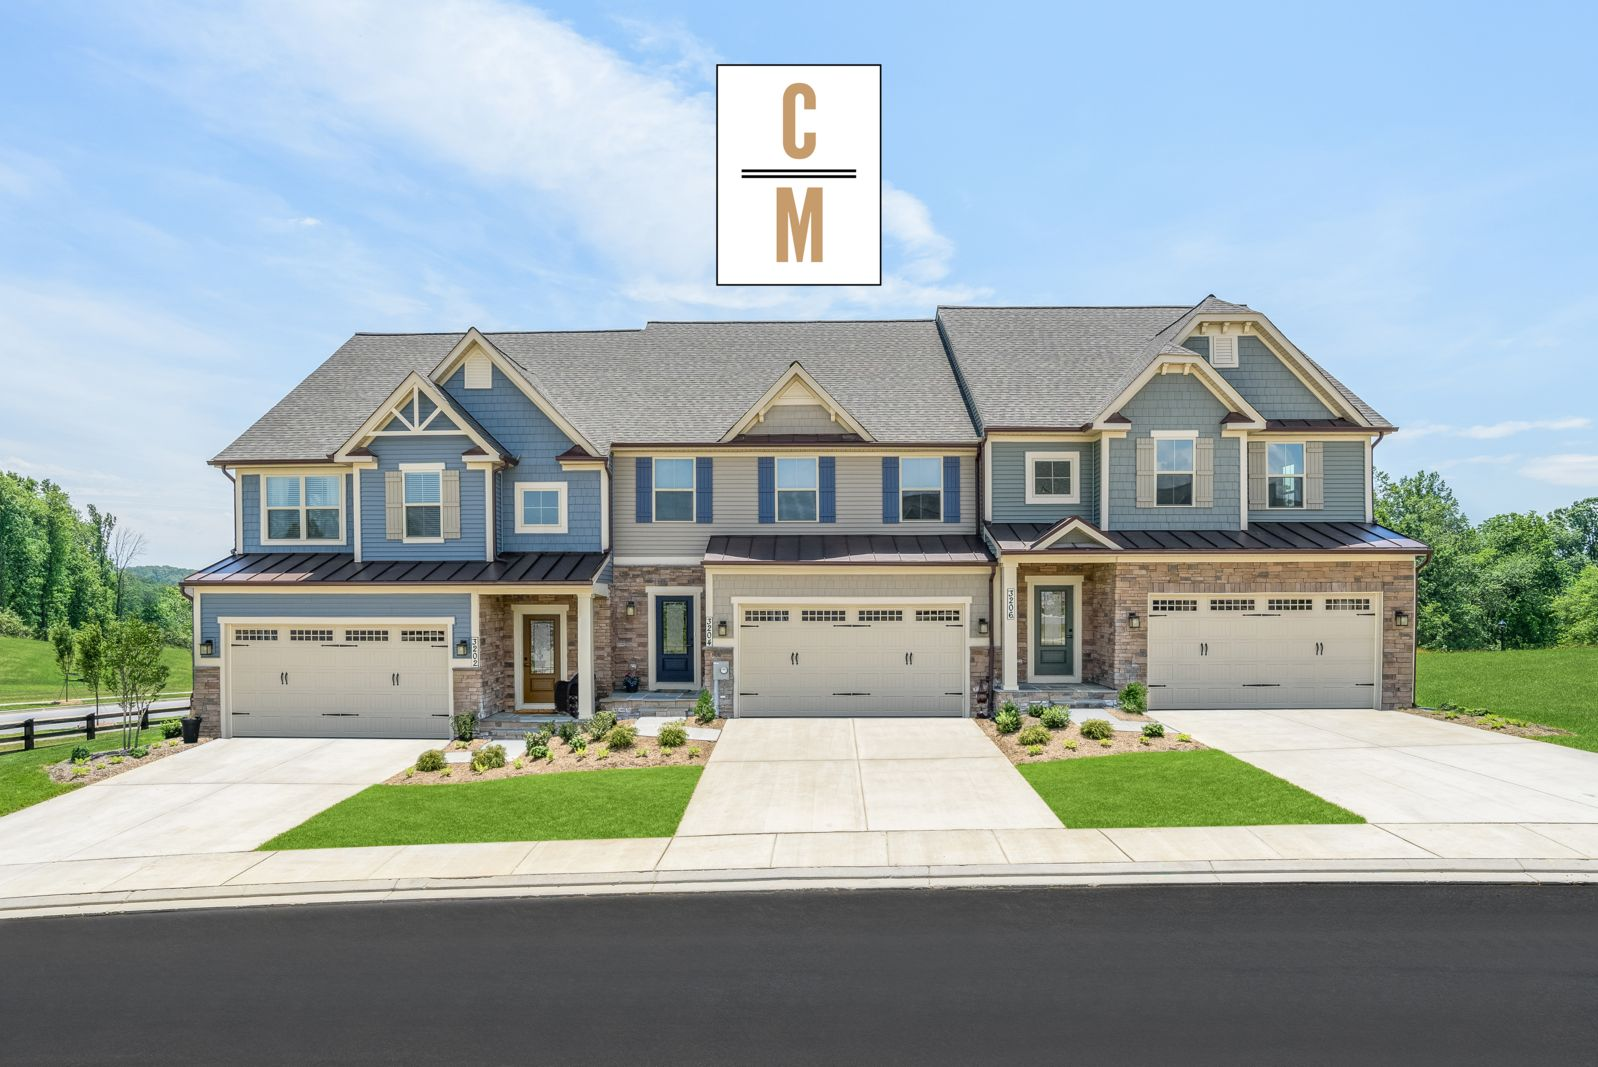 Welcome to Cardinal Meadows:New, 2-story craftsman style townhomes w/ first-floor owner's suites, 1-2 car garages & backyards! Unmatched in access to shopping, interstates & Grassfield schools, from the $300s.Join the VIP List!